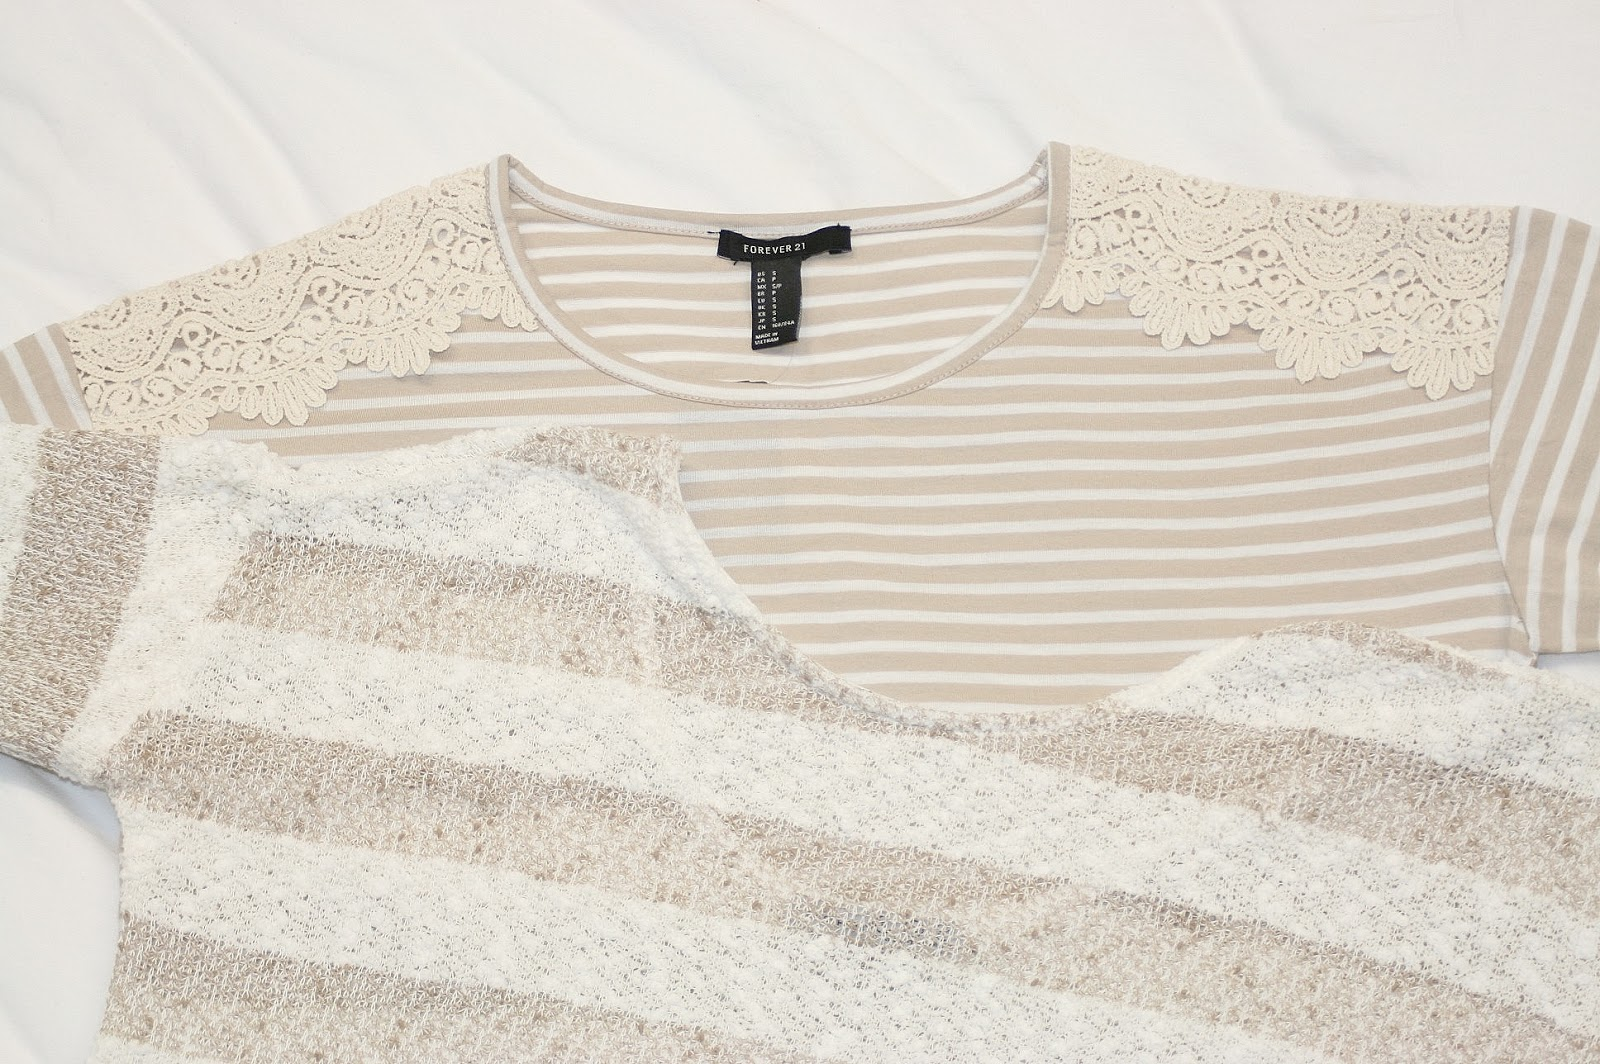 Katherine Penney Chic Forever 21 Primark Jumper White Beige Cream Fashion Spring Style